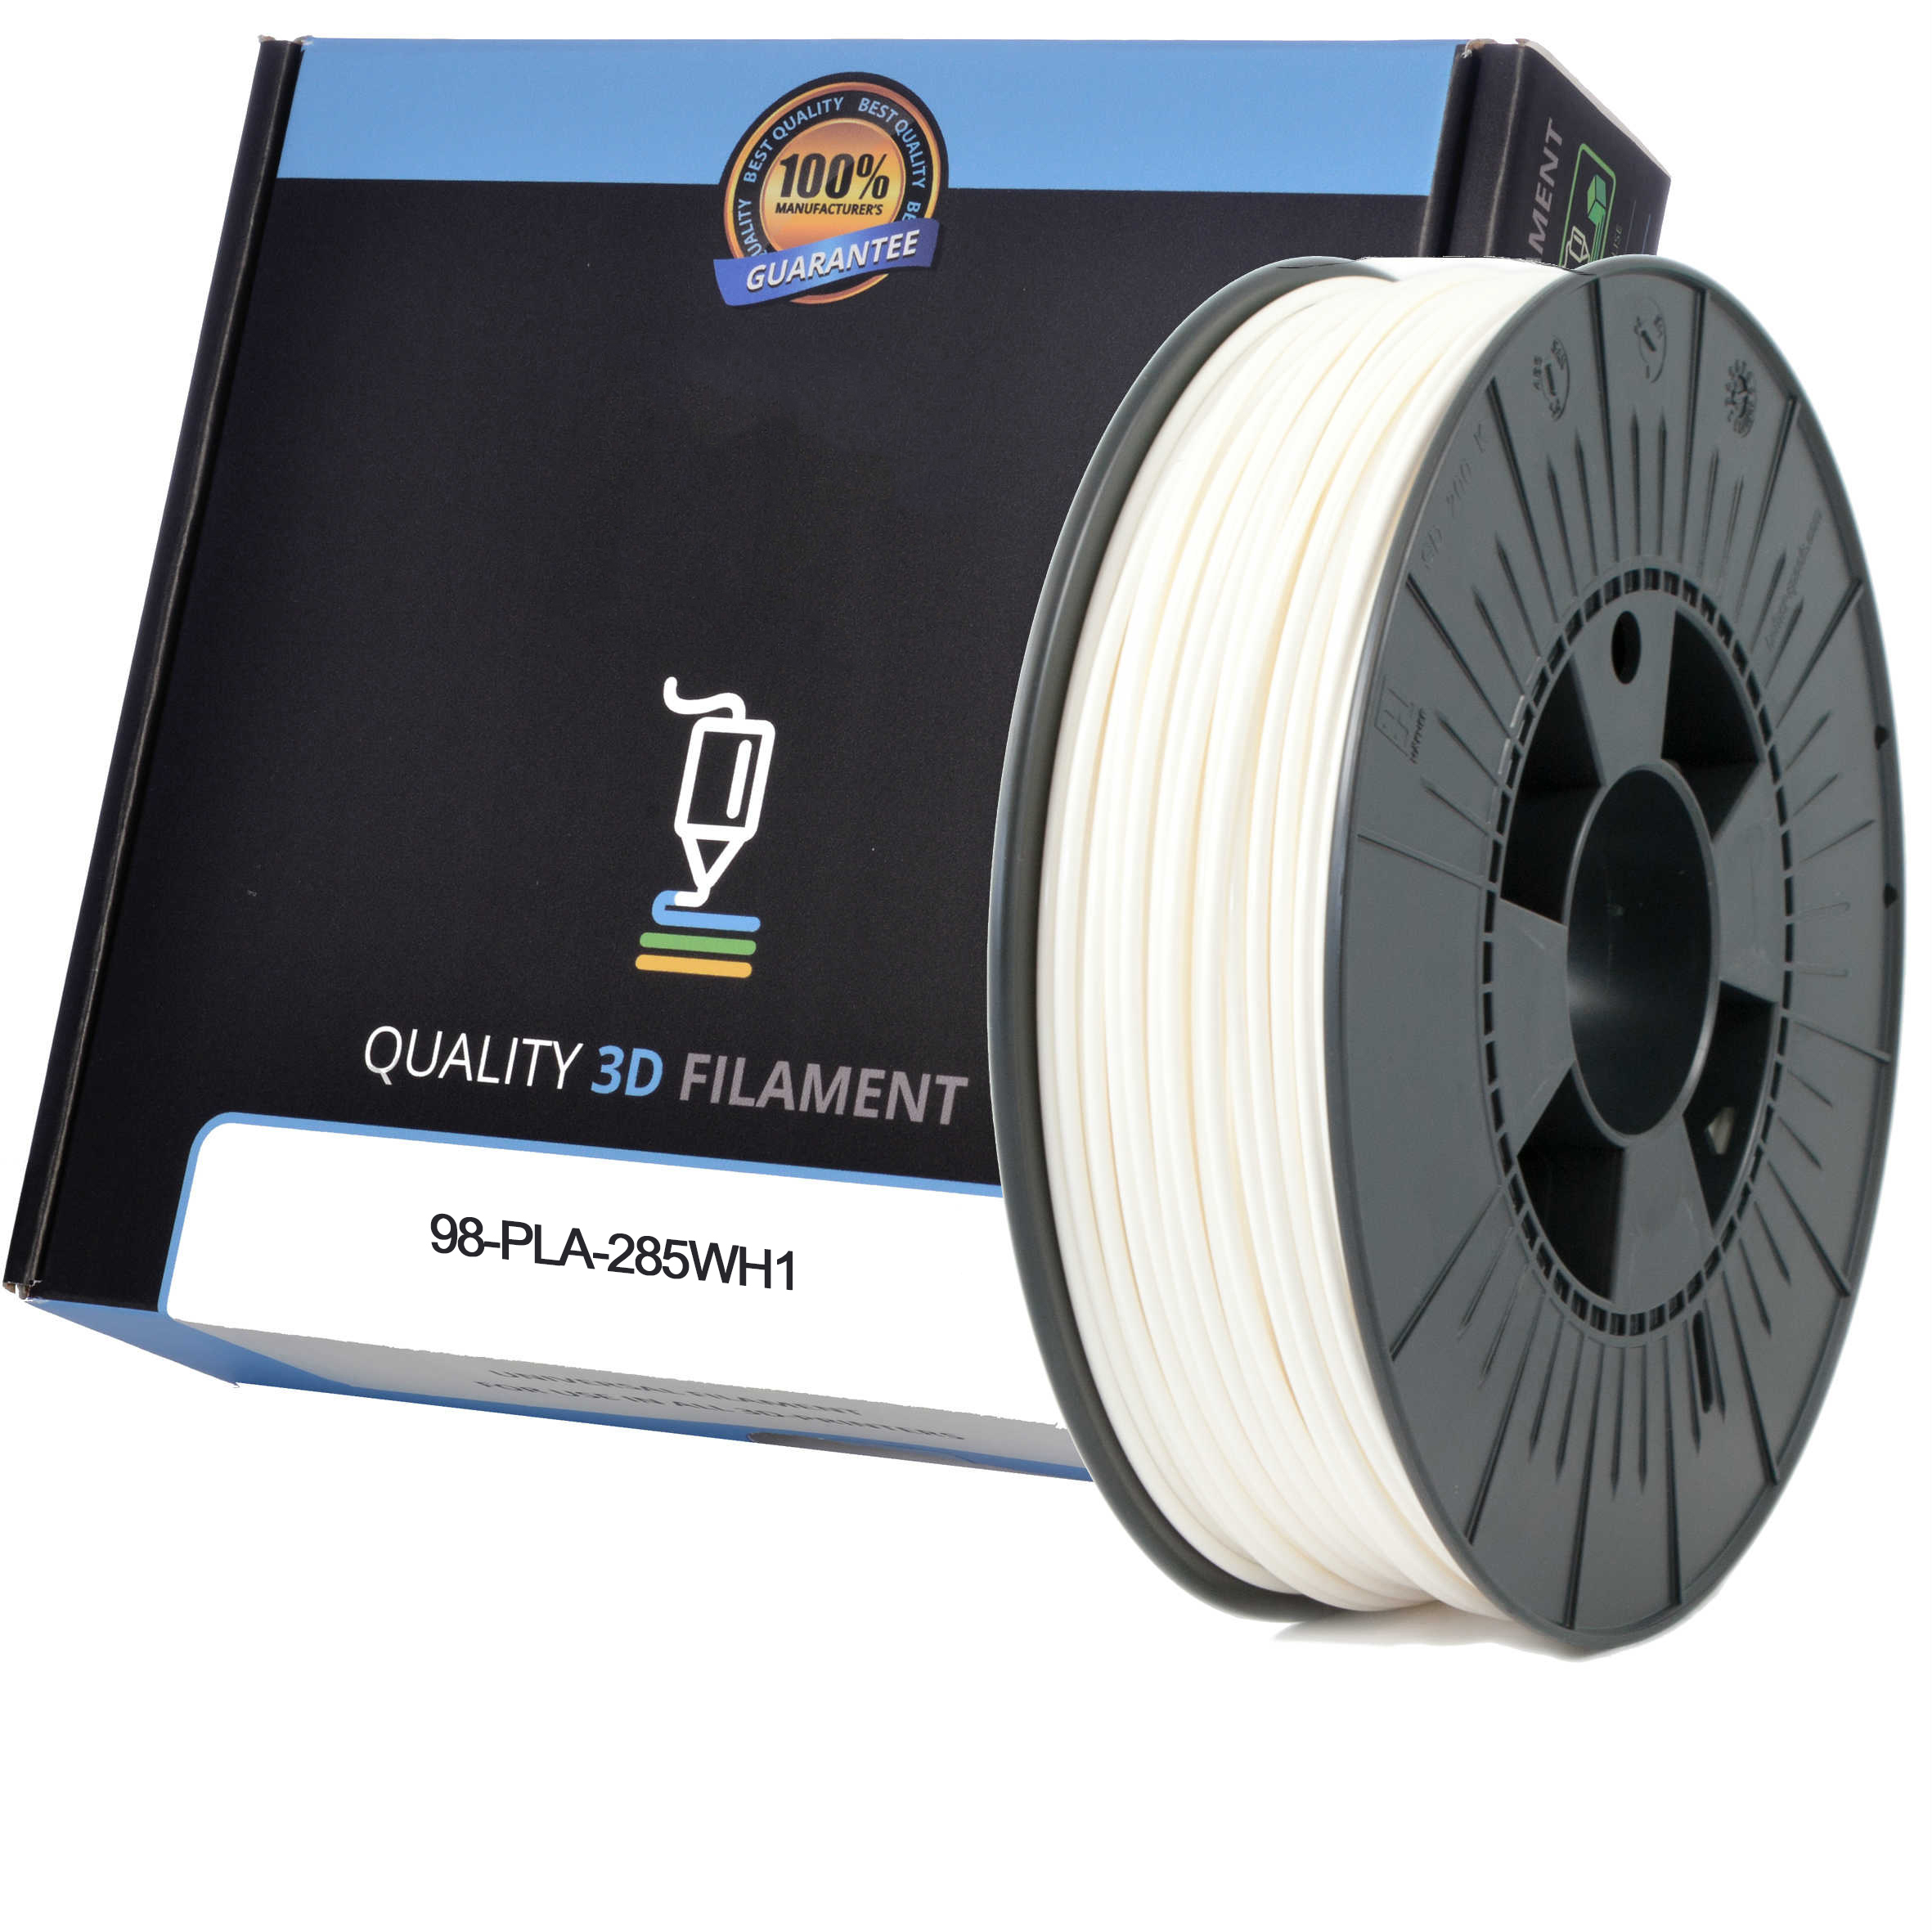 Premium Compatible PLA 2.85mm White 0.5kg 3D Filament (98-PLA-285WH1)